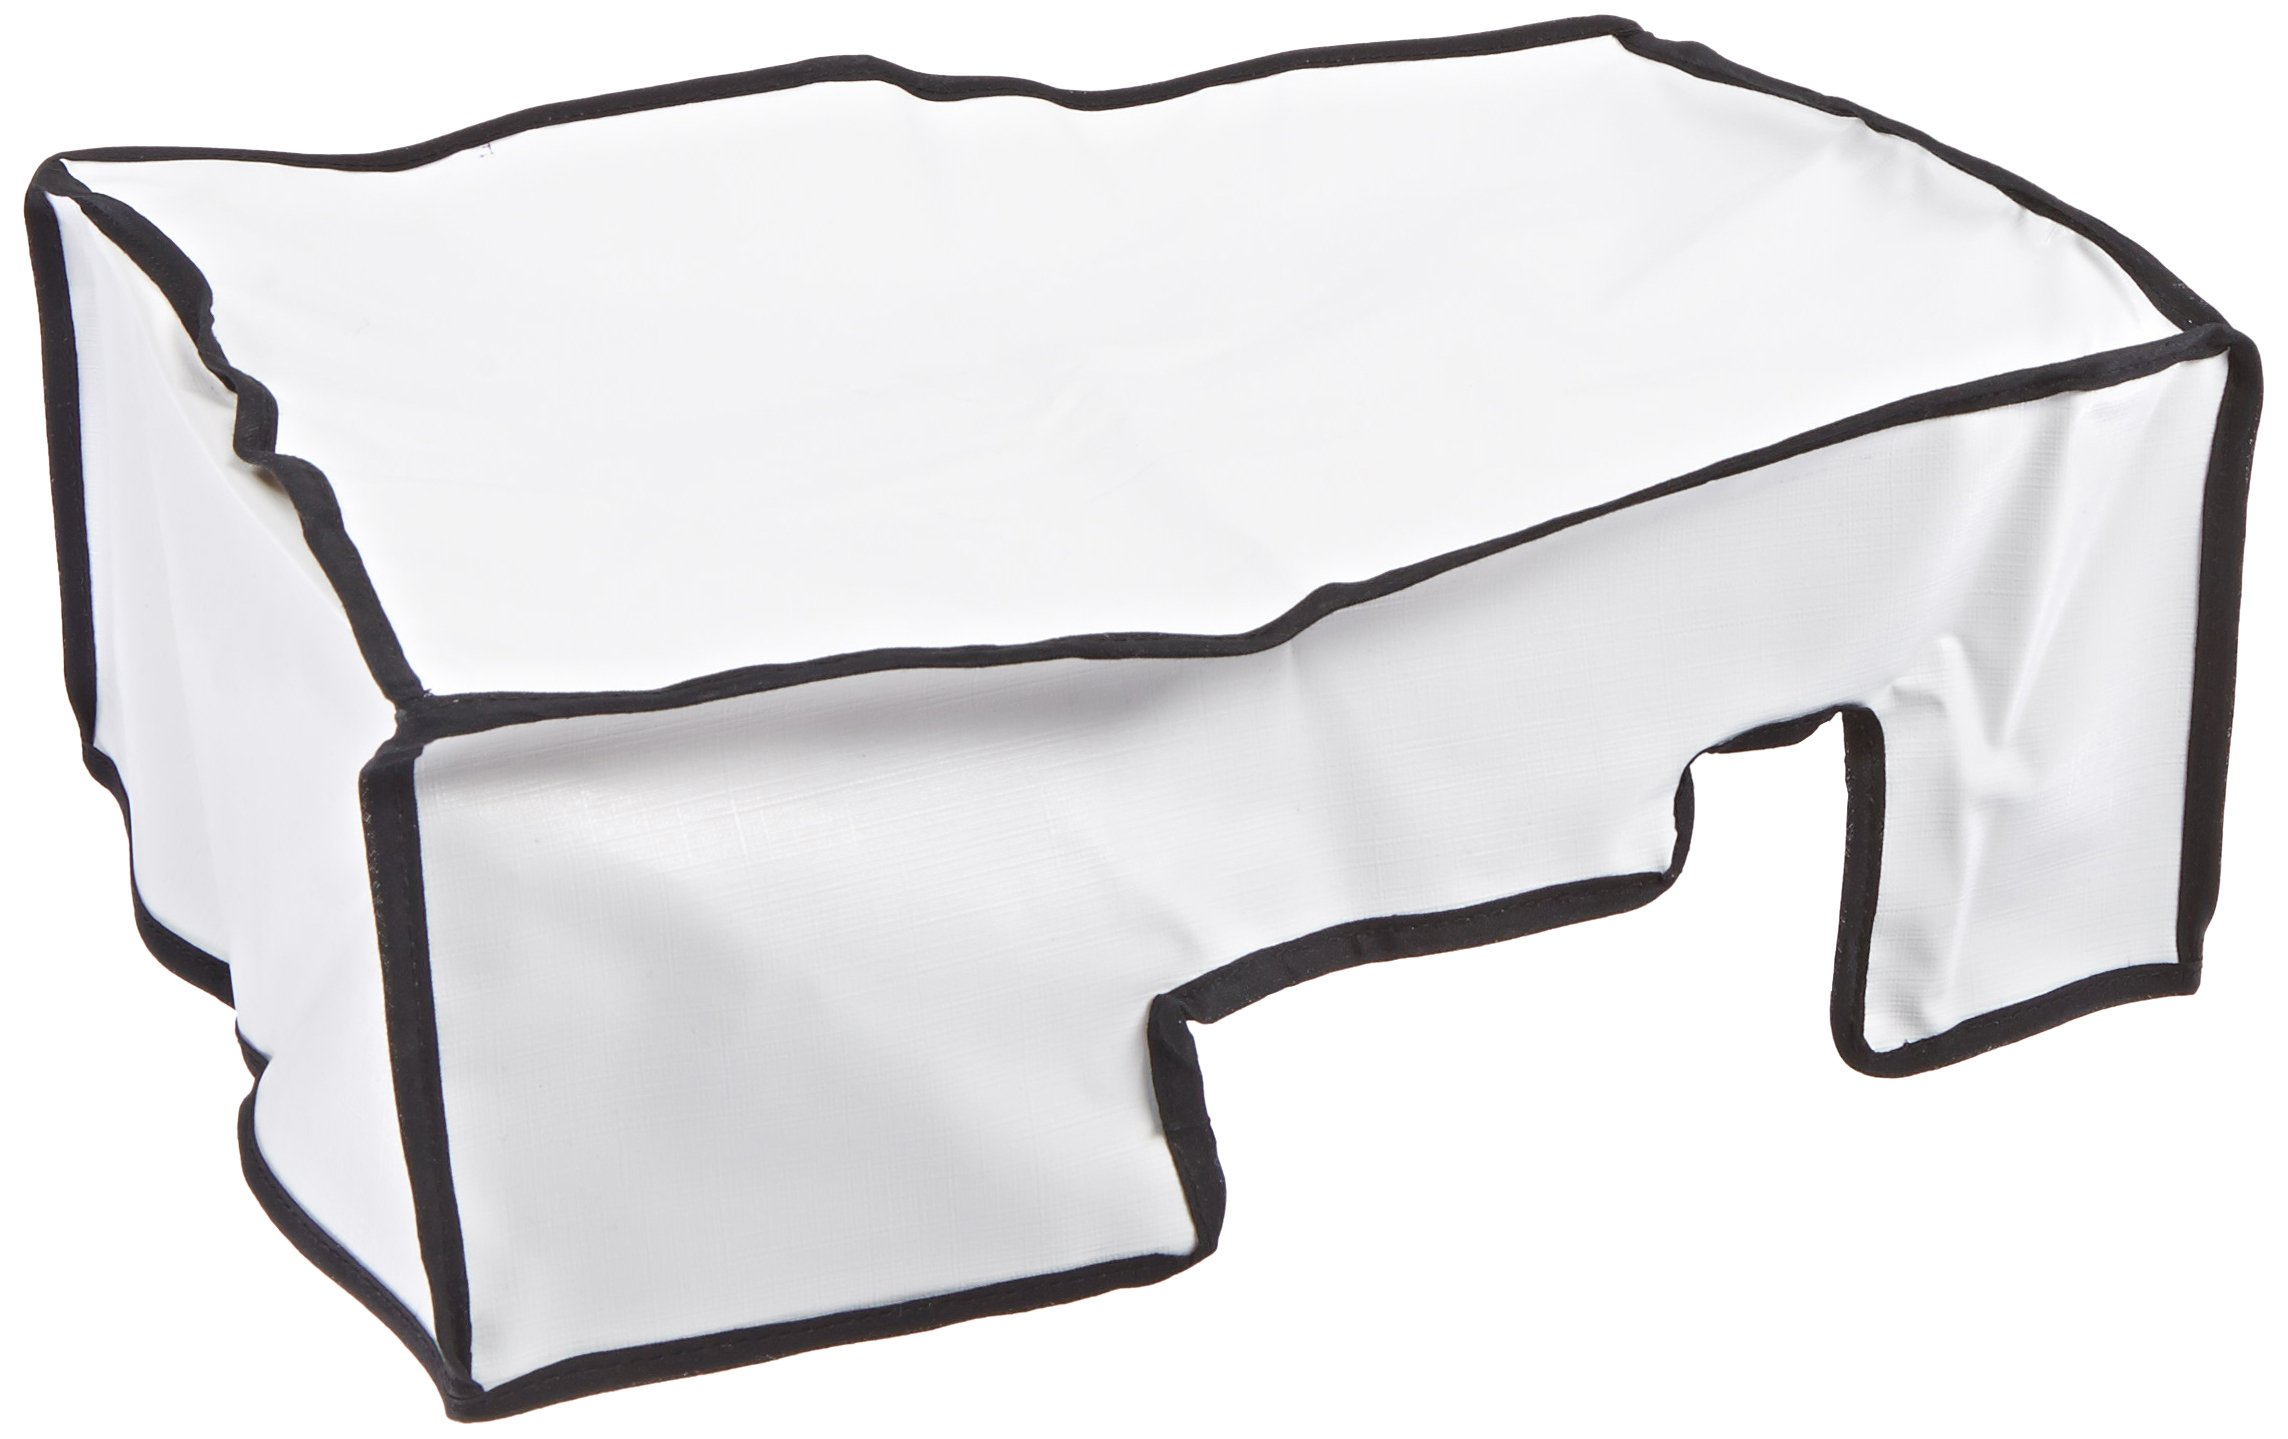 Jenway 630-028 Dust Cover for 63 Series Spectrophotometer